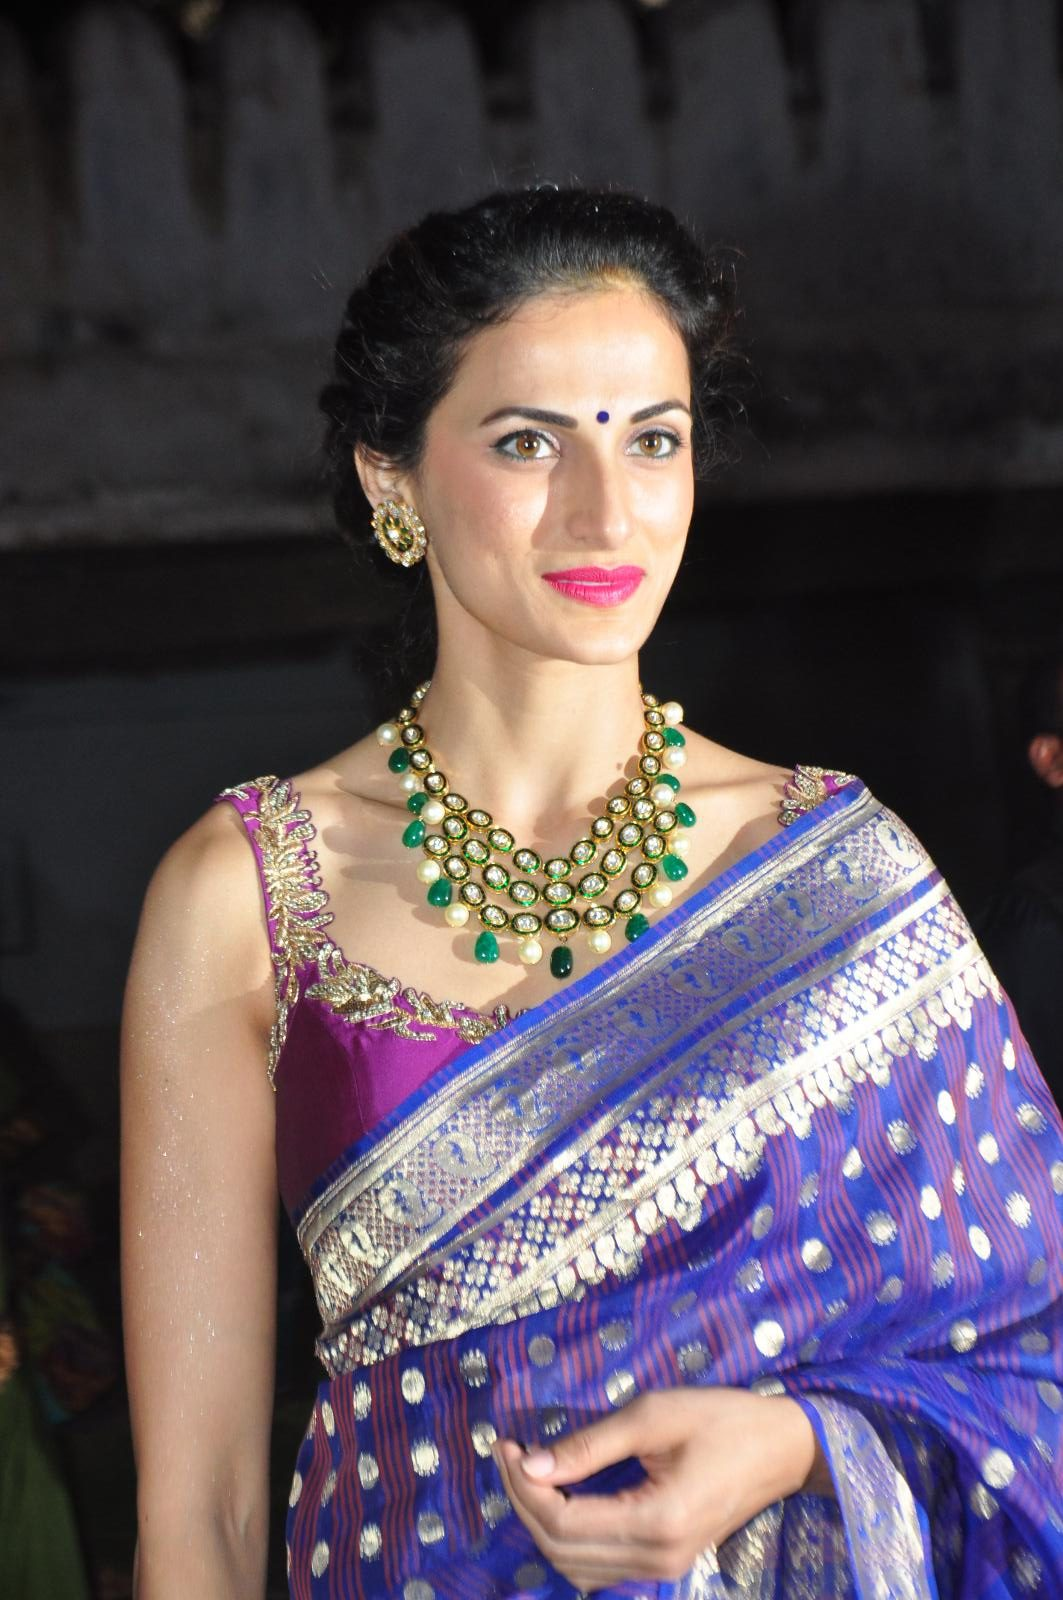 shilpa reddy Brand New Photo Stills of Beautiful Shilpa Reddy | Fashion | Modelling Shilpa Reddy 122 e1485256769224